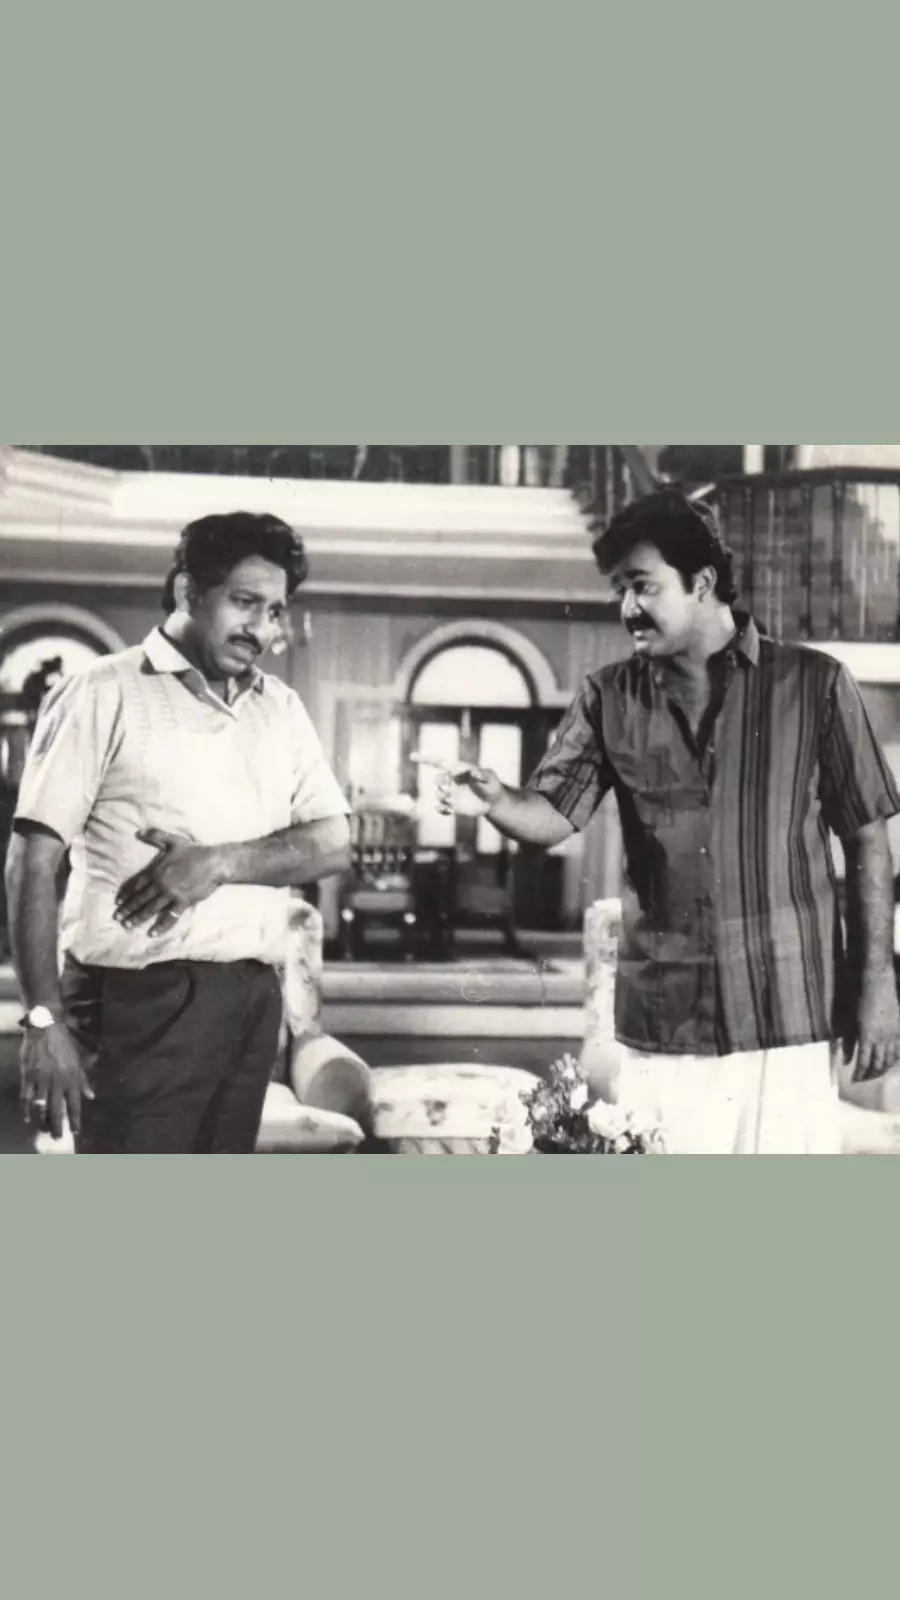 Mohanlal and Nedumudi Venu had great onscreen chemistry and a deeper rapport in real life.